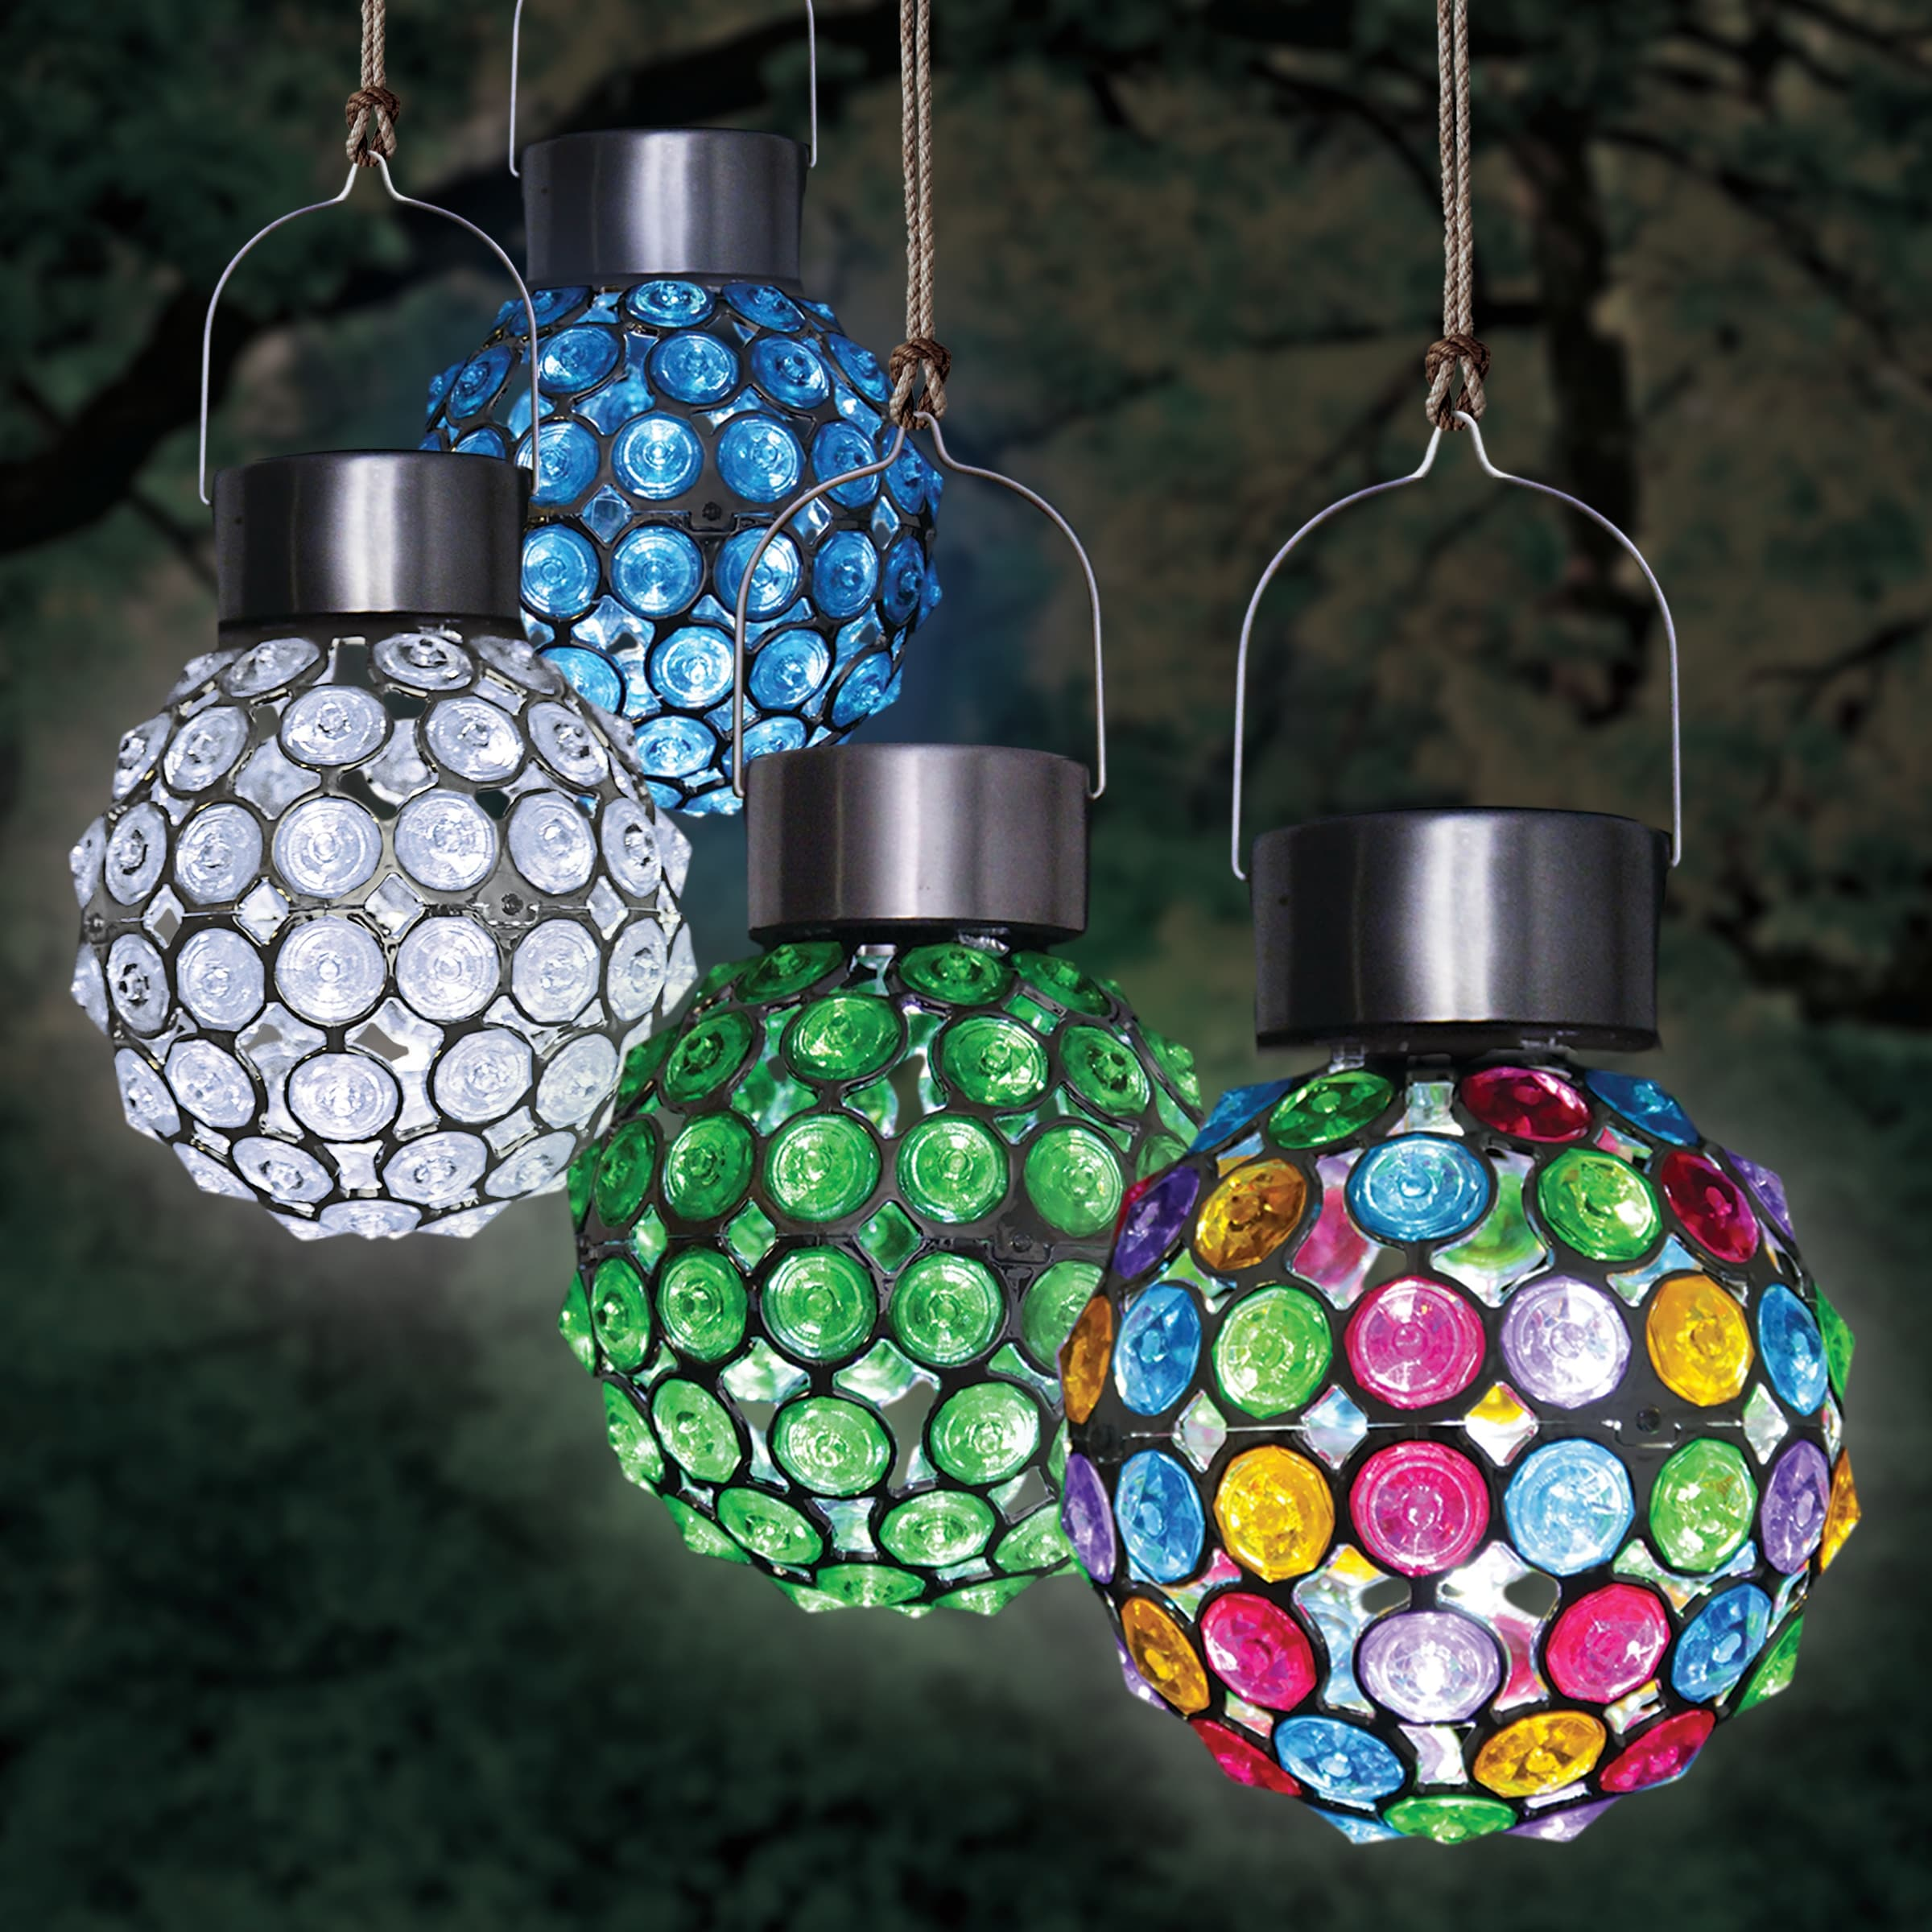 Shop Black Friday Deals On Exhart Solar Hanging Acrylic Ball Lights Set Of Four 4 By 6 Inches Overstock 28313369